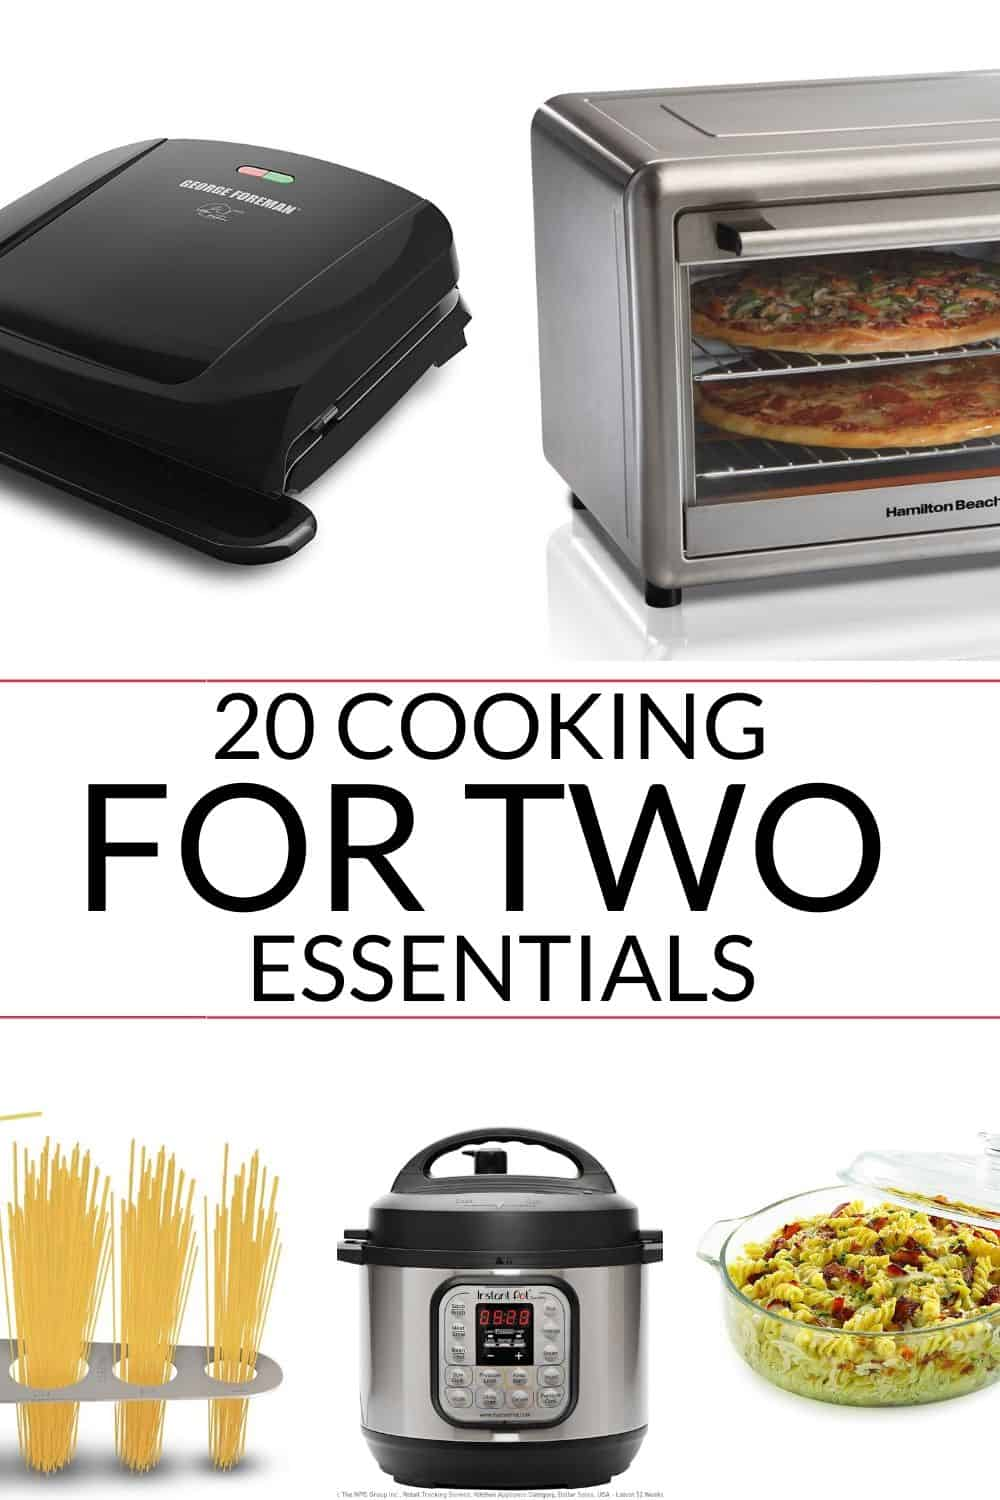 here is an awesome list of 20 cooking for two